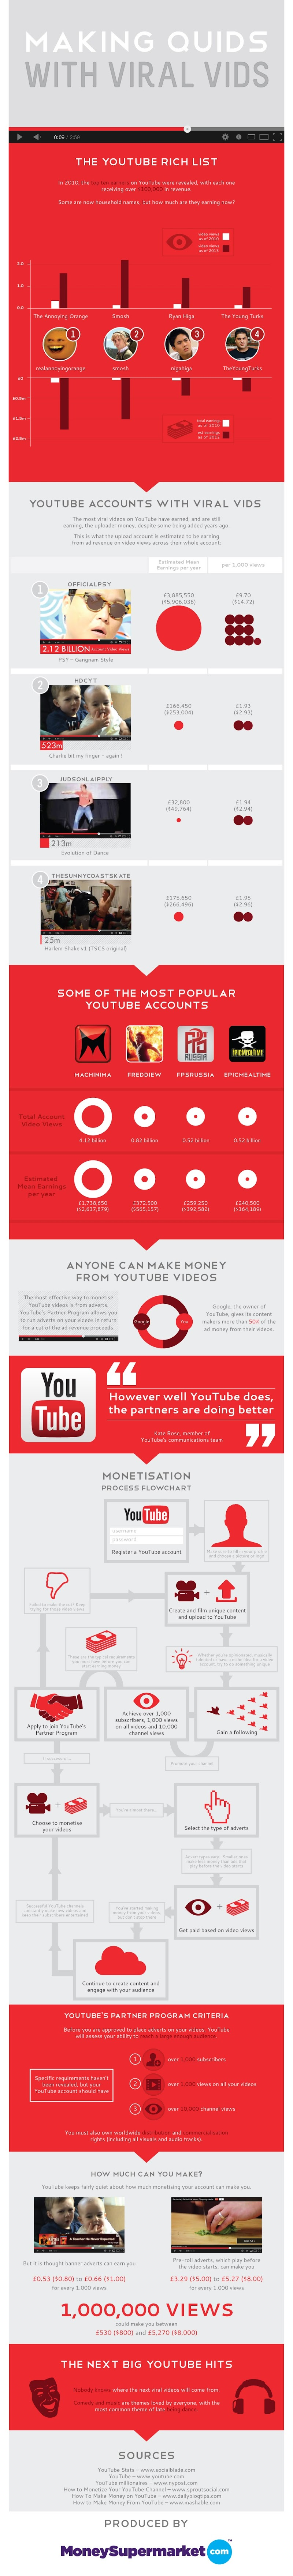 Making Quids with Viral Vids - Making Money from YouTube Videos - infographic